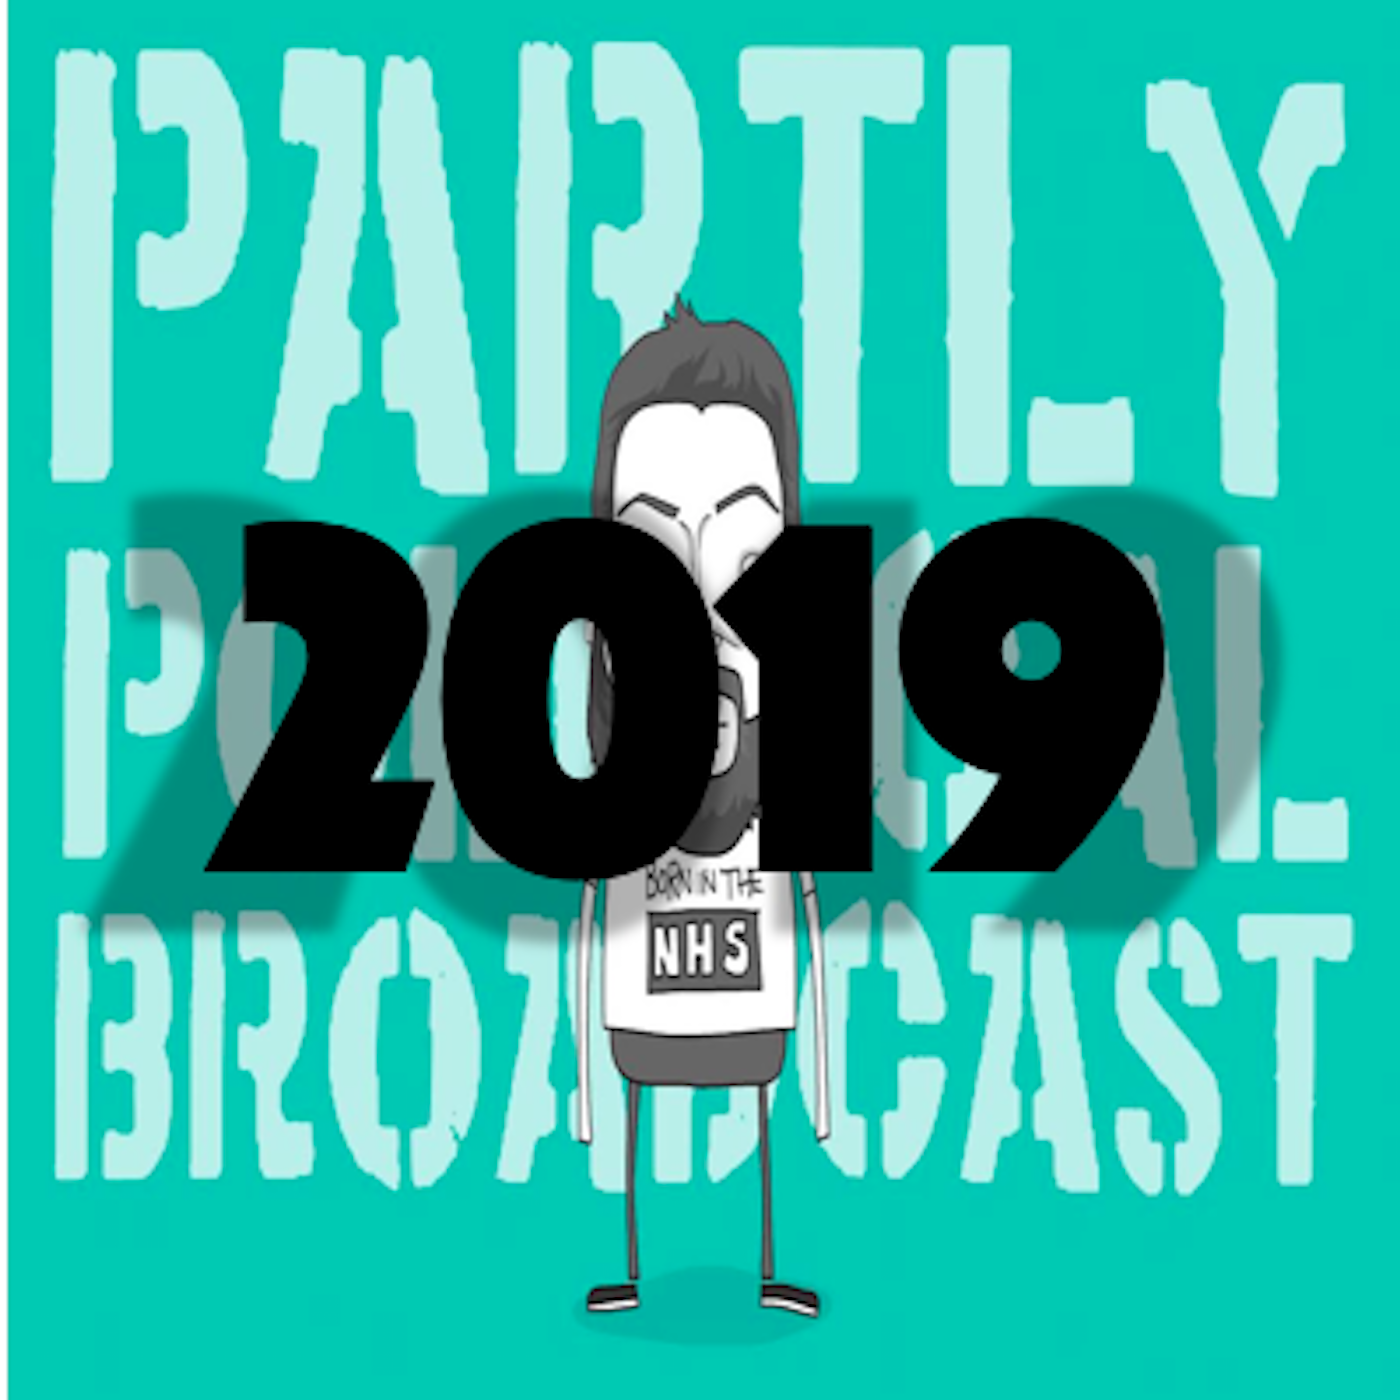 ParPolBronus – NEWSTRADAMUS 2019 Predictions + Bec Hill, Howard Read, Nick Doody, Jonny and the Baptists and Frankie Boyle